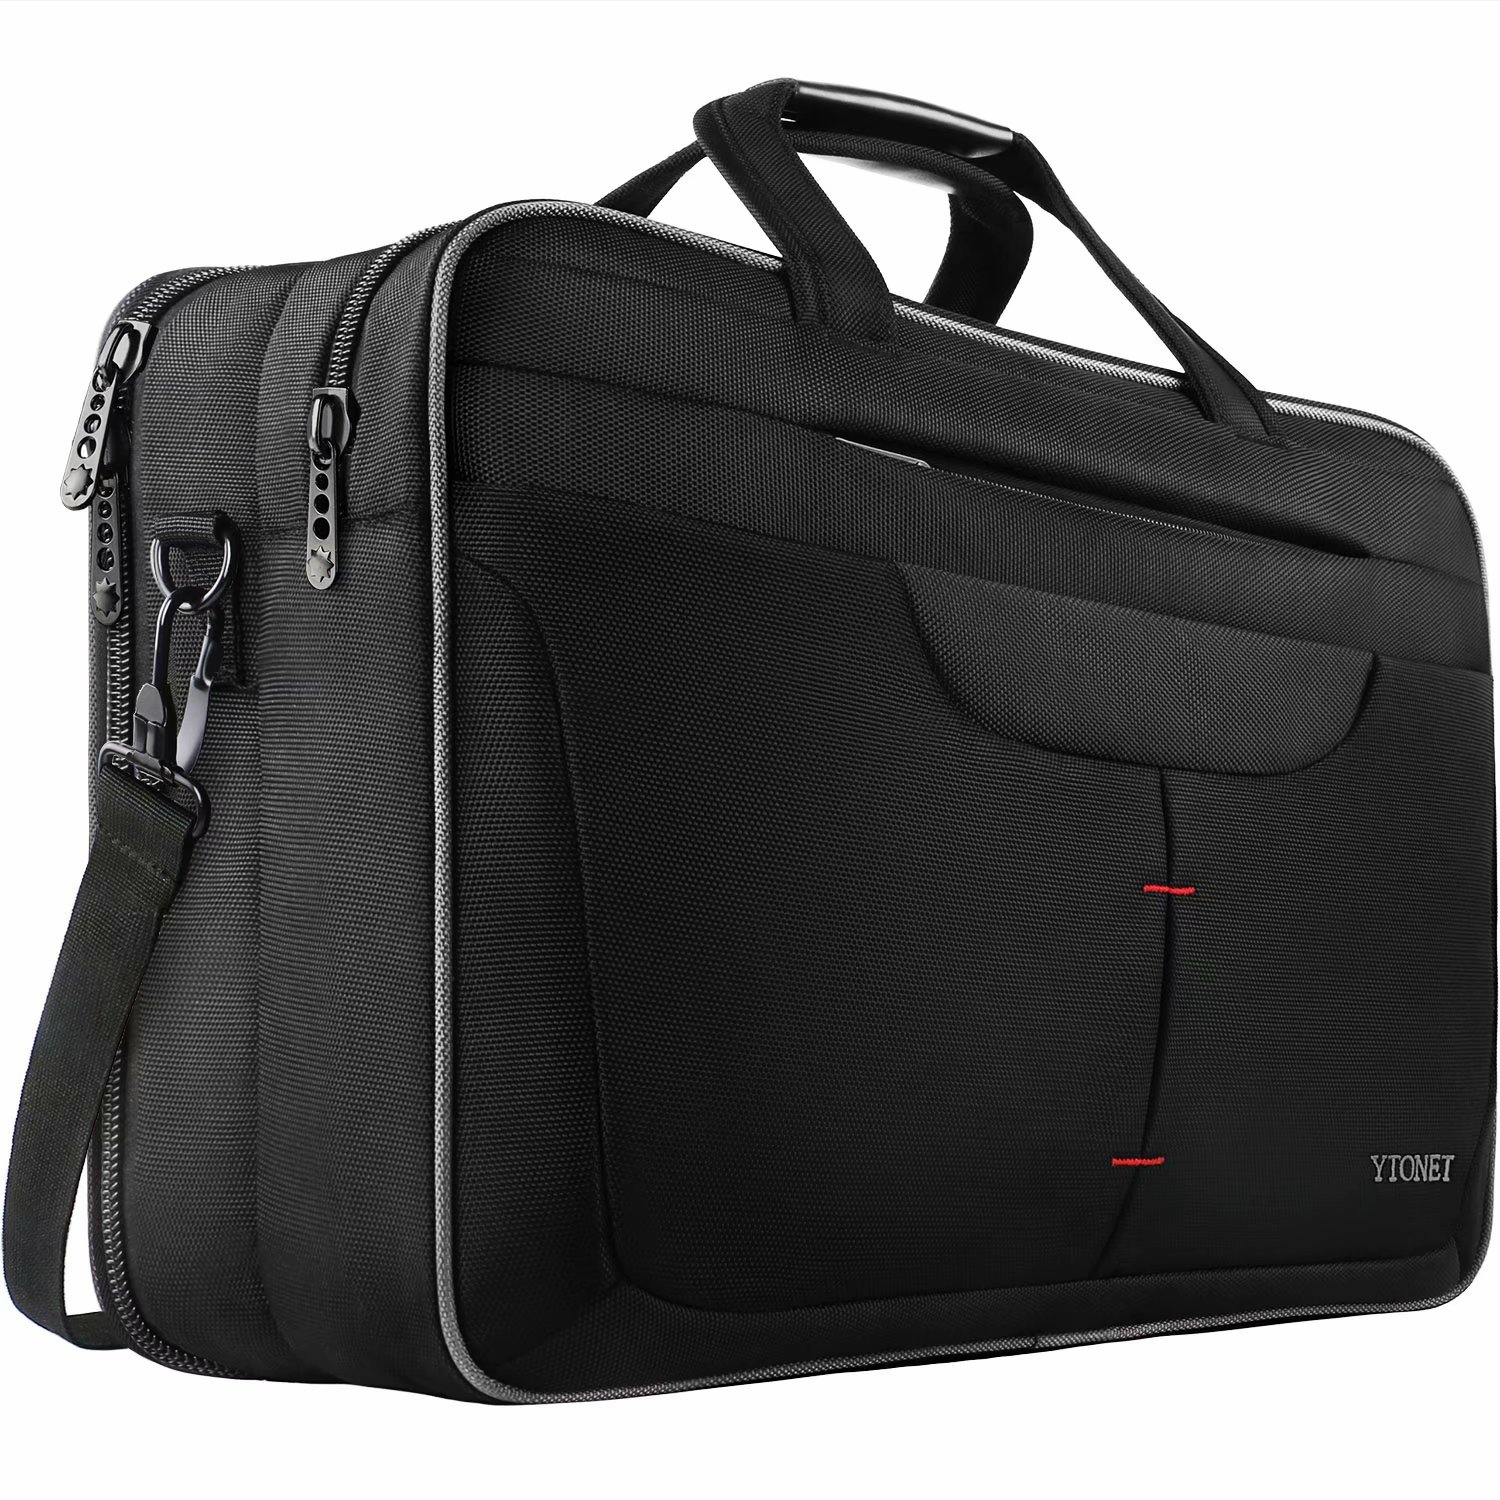 17 inch Laptop Bag, Travel Briefcase with Organizer, Expandable Large Hybrid Shoulder Bag, Water Resisatant Business Messenger Briefcases for Men and Women Fits 17 15.6 Inch Laptop, Computer, Tablet Cafeleo Cafeleo-LaptopBag-001